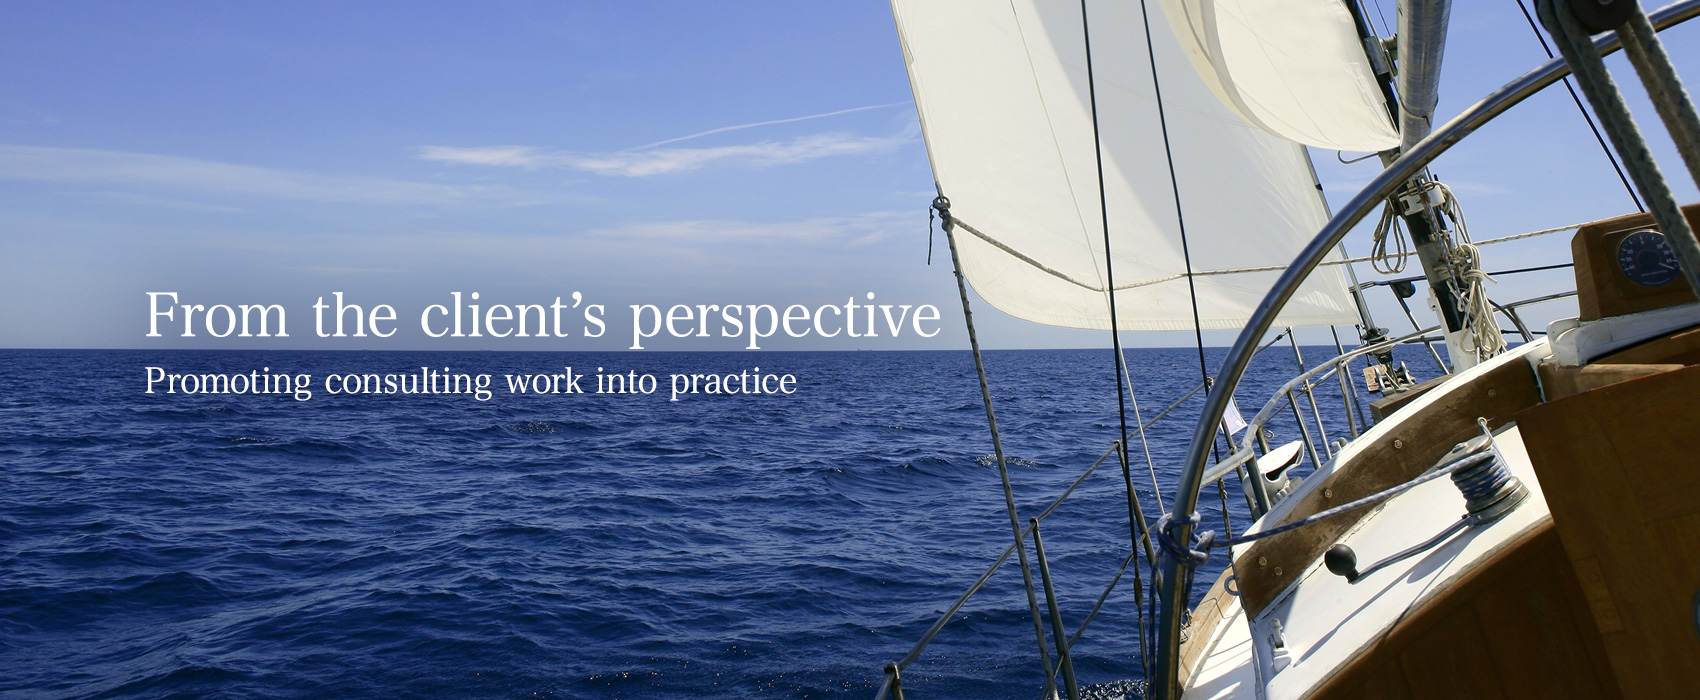 From the client's perspective — Promoting consulting work into practice